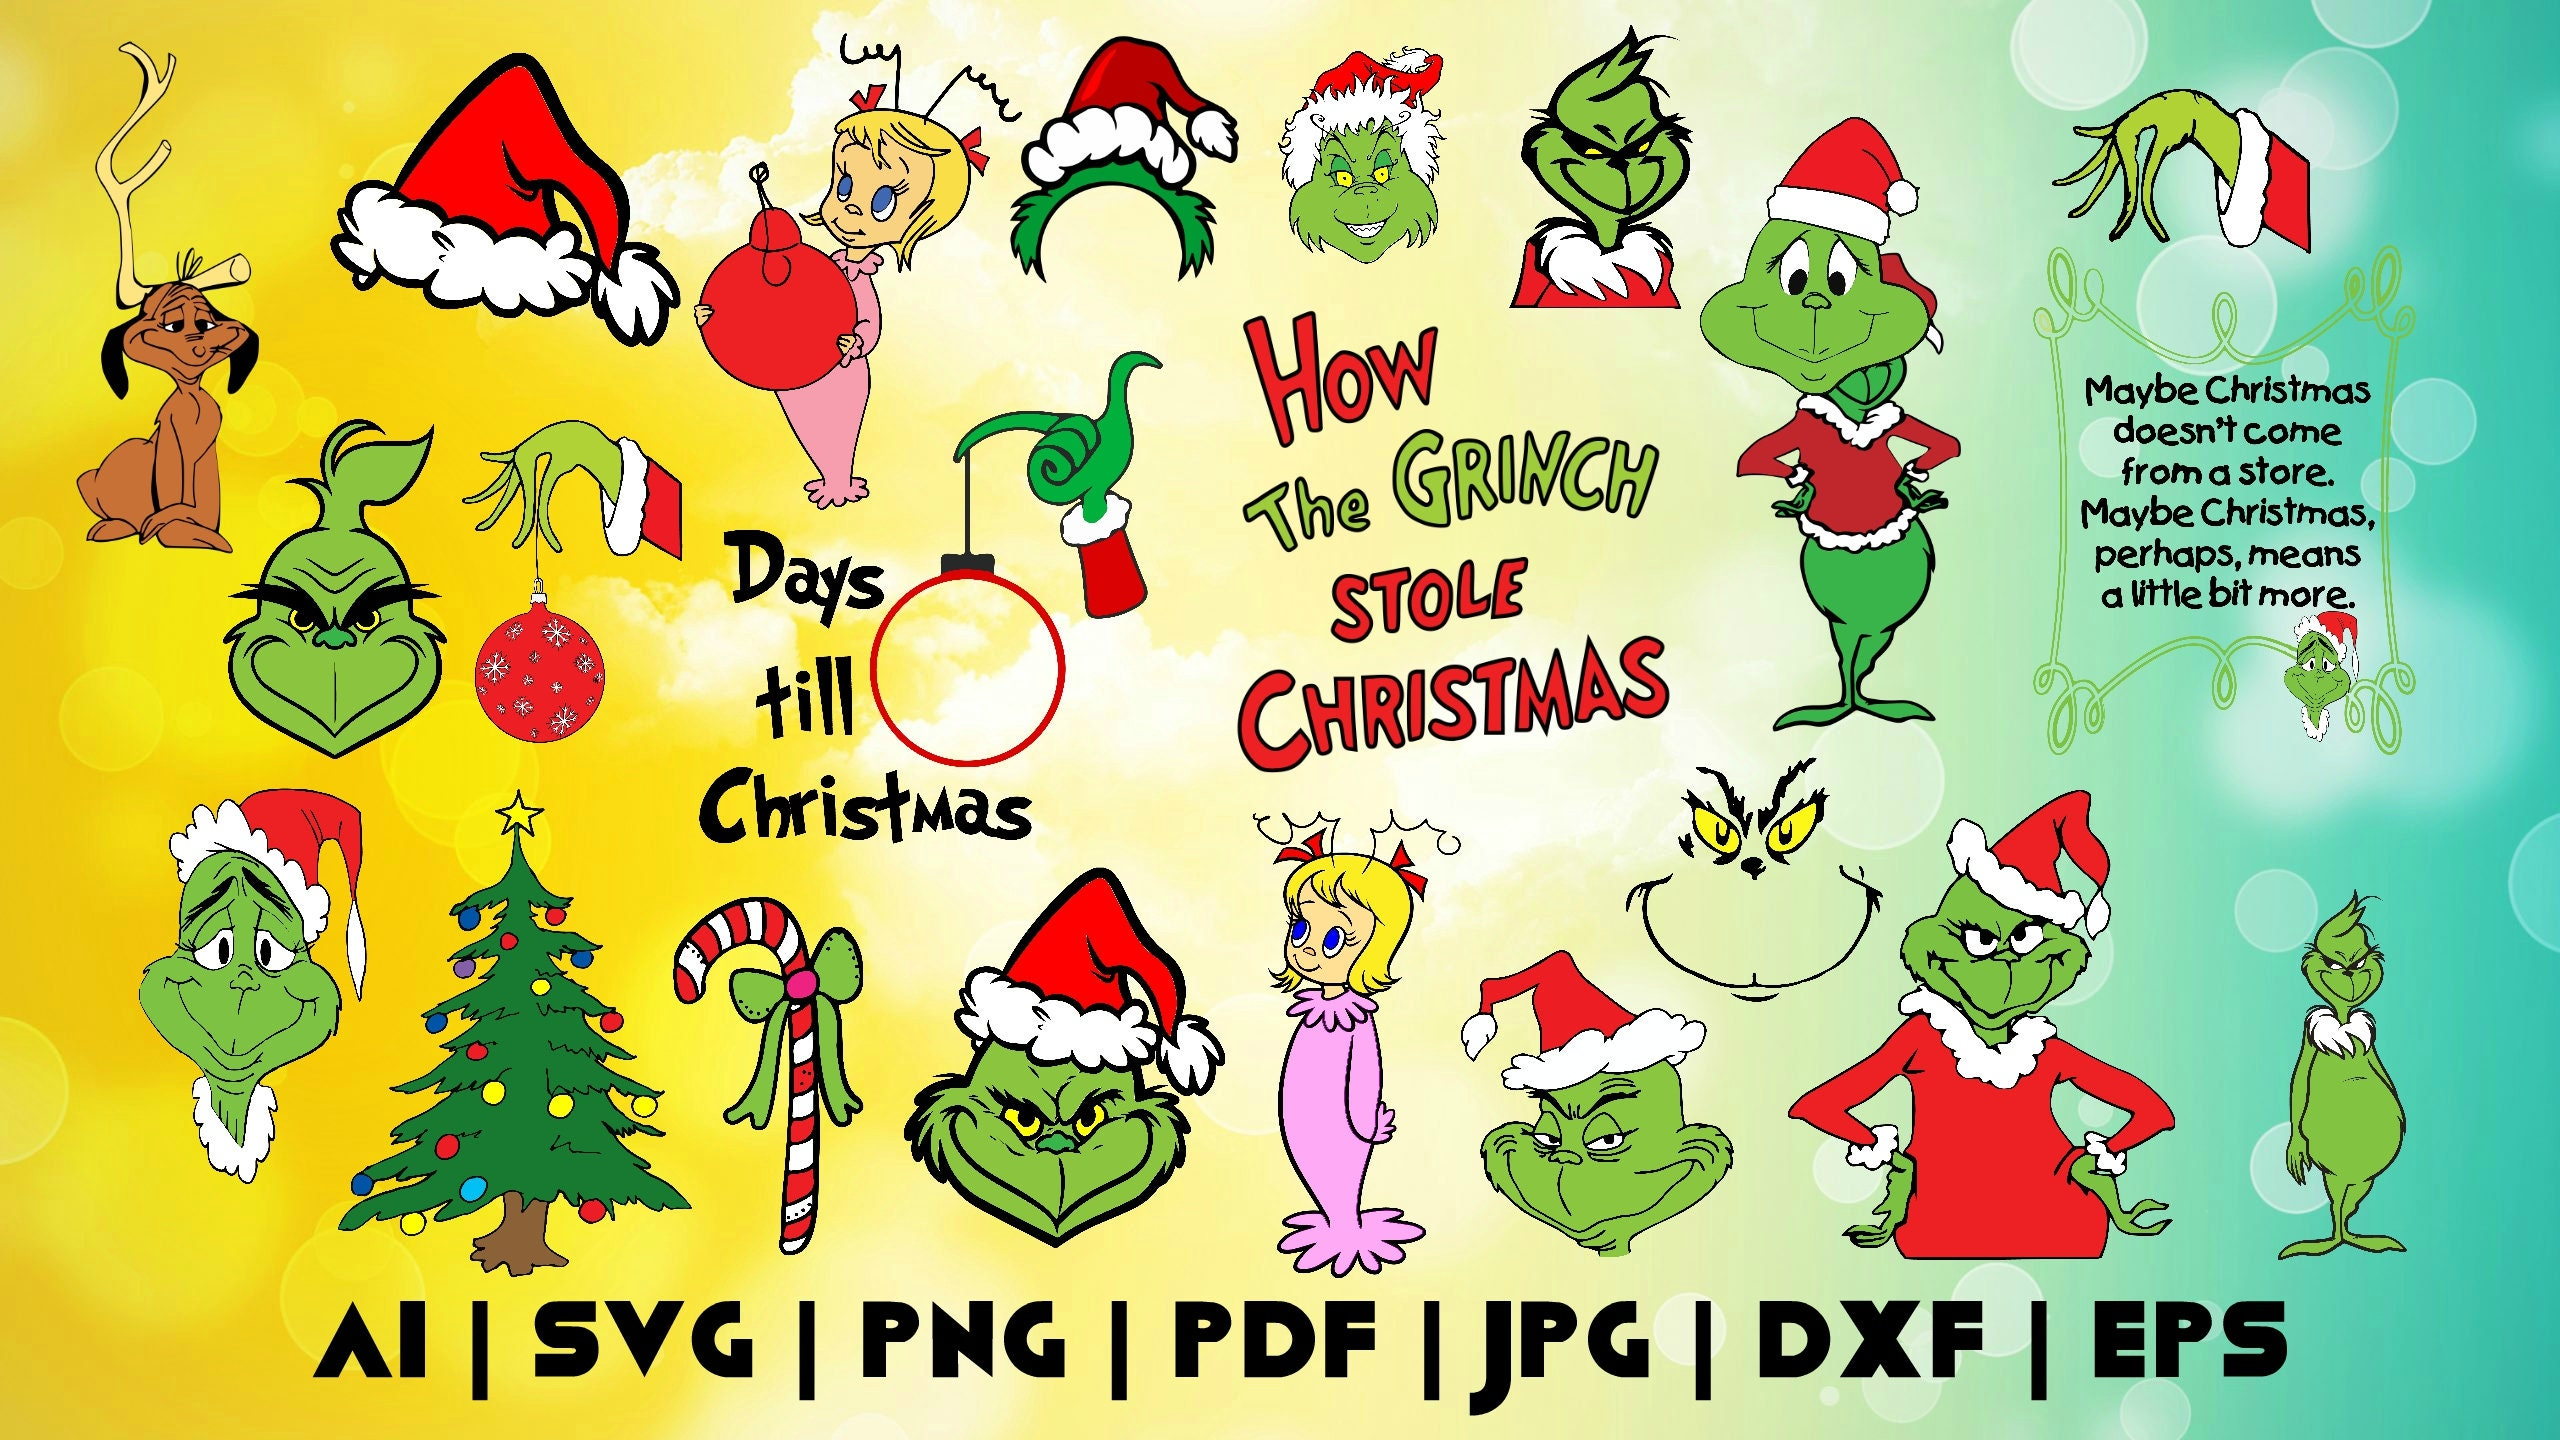 Christmas Grinch Svg.24 Grinch Svg Clipart How Grinch Stole Christmas Cricut Digital Print Instant Download